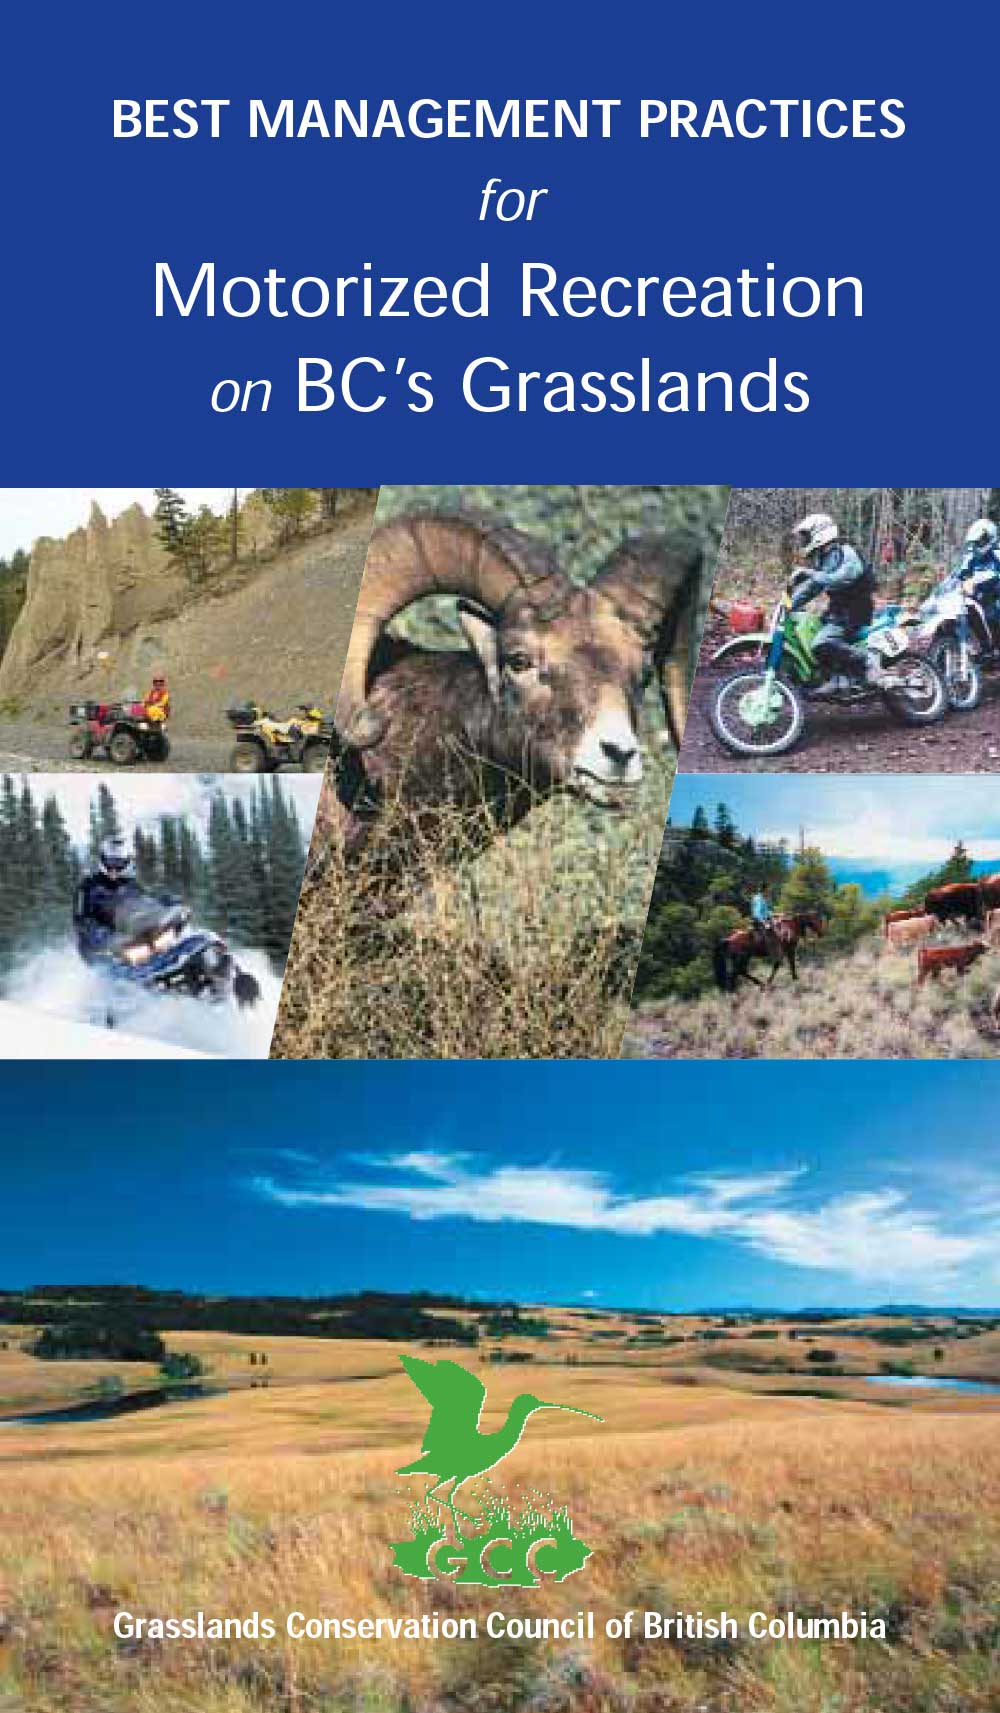 BC Grasslands - Best Management Practices for Motorized Recreation